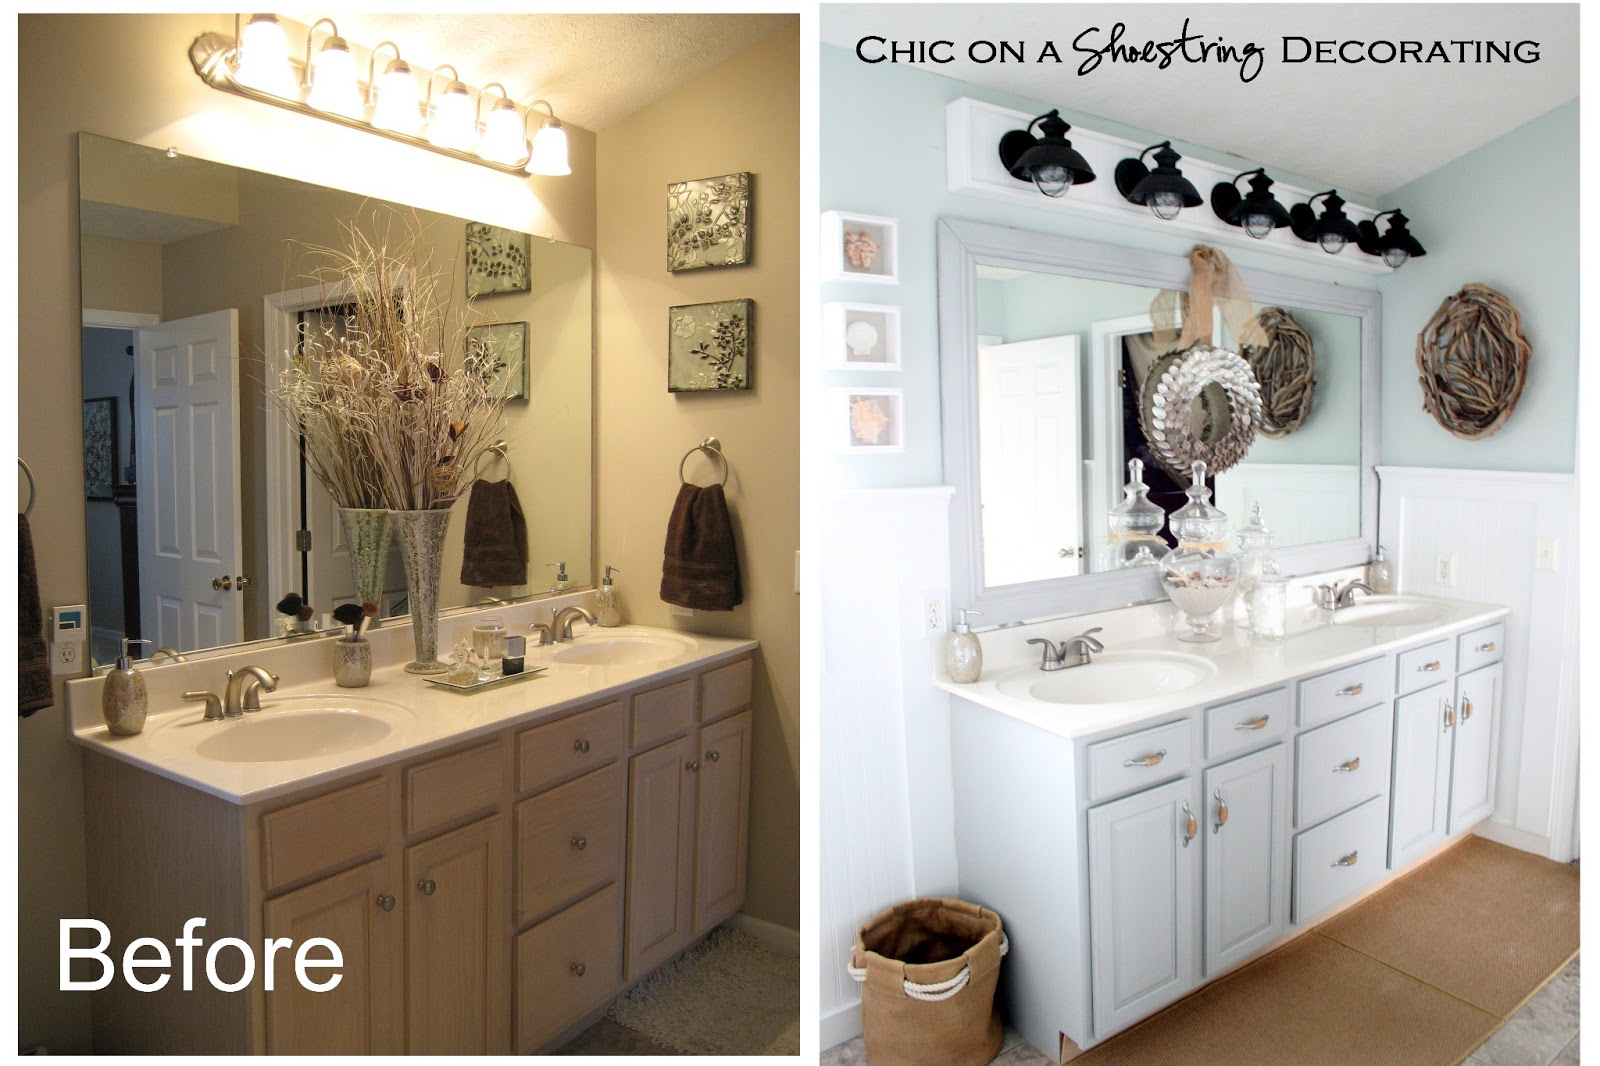 beach bathroom ideas. beach coastal bathroom by Chic on a Shoestring Decorating  Beachy Bathroom Reveal